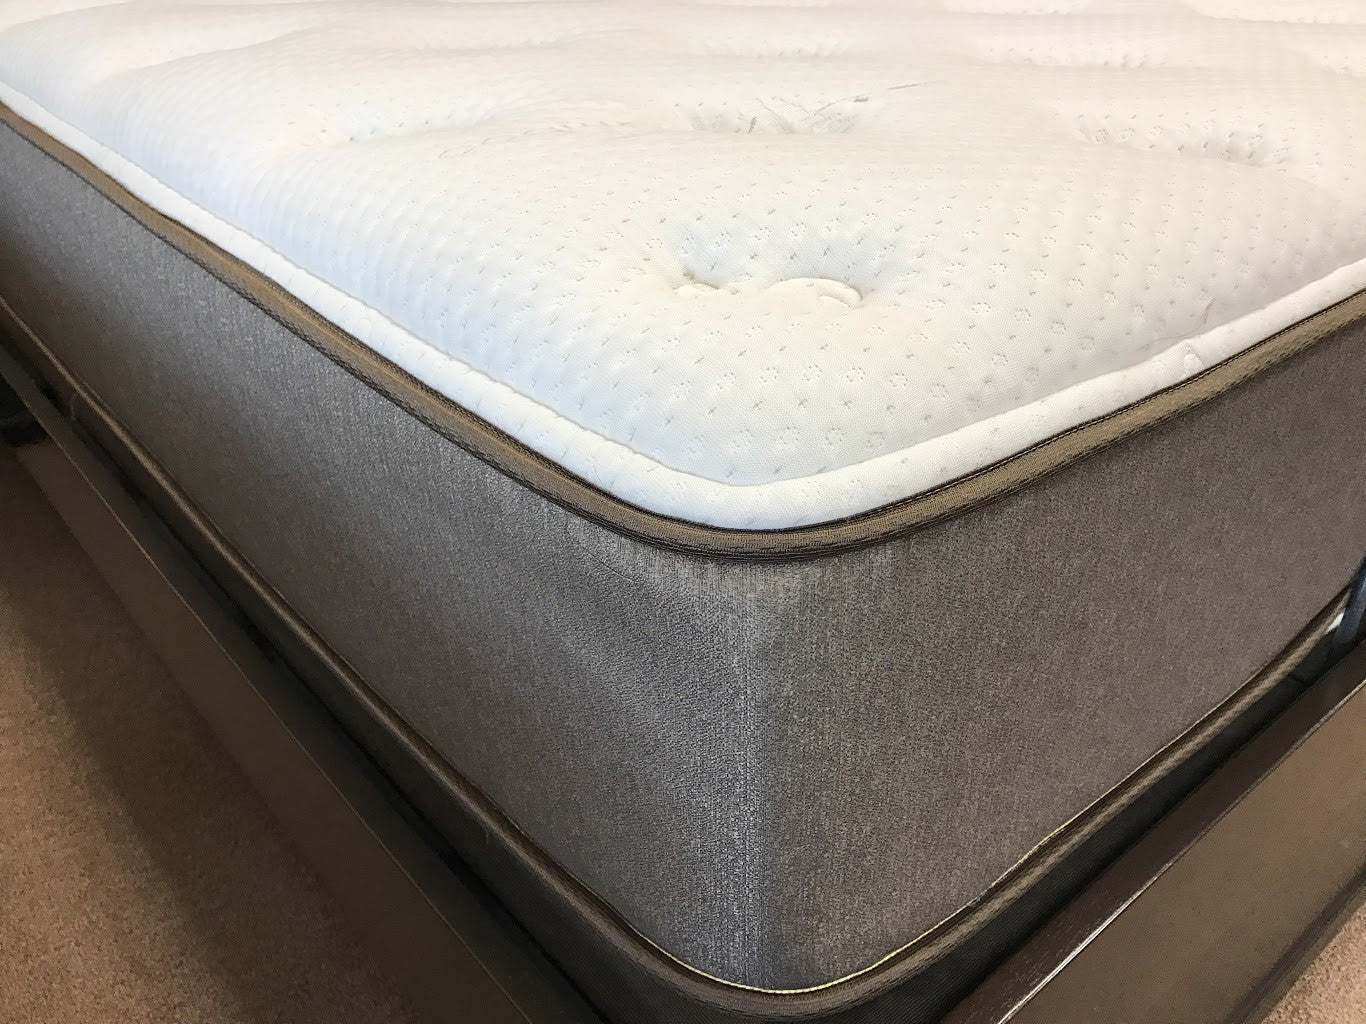 myth shifman sided double mattress legend mattresses the two